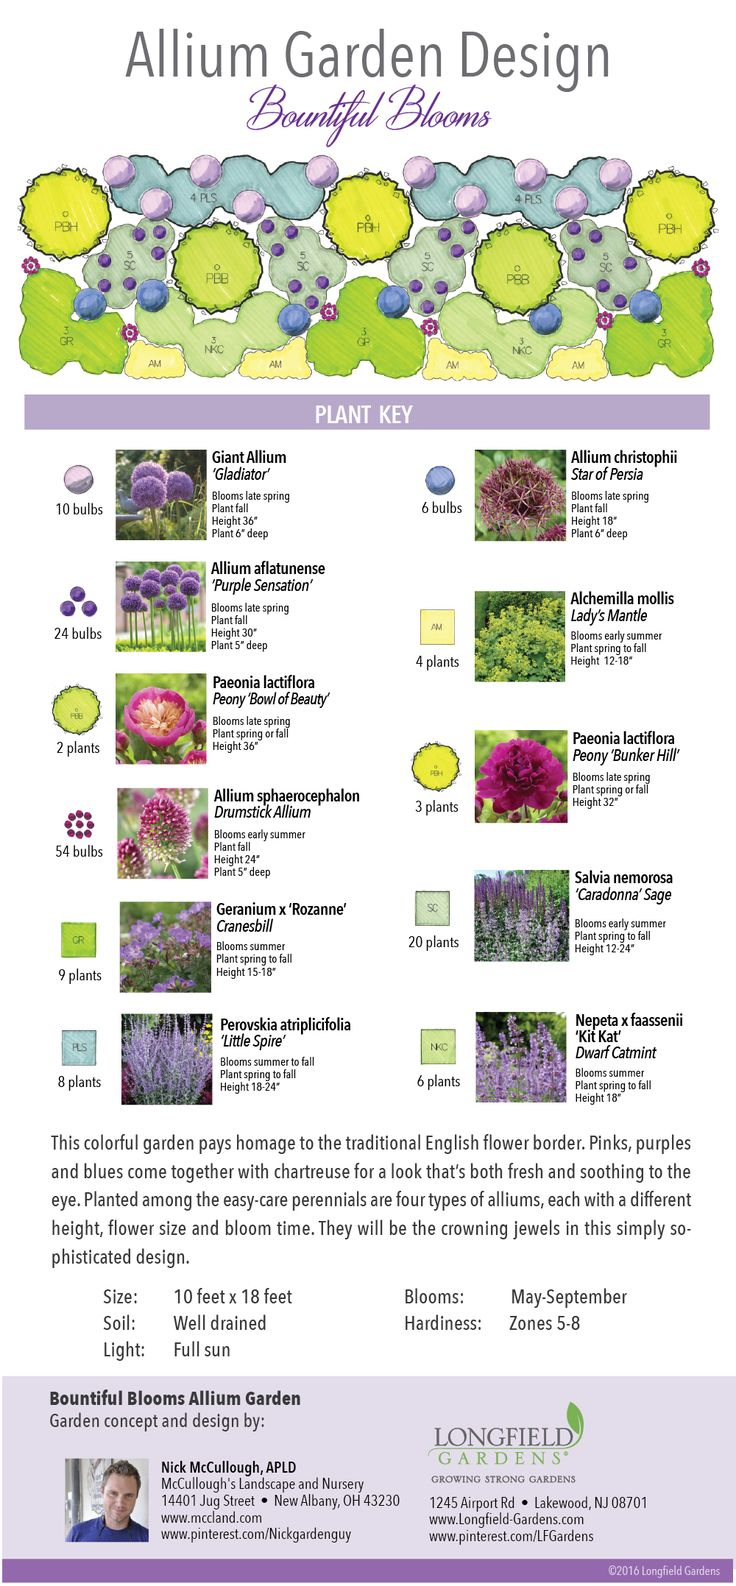 Bountiful Blooms, a jeweled tone perennial border highlighting the spherical, fluffy heads of alliums from Longfield Gardens and Thinking Outside the Boxwood.